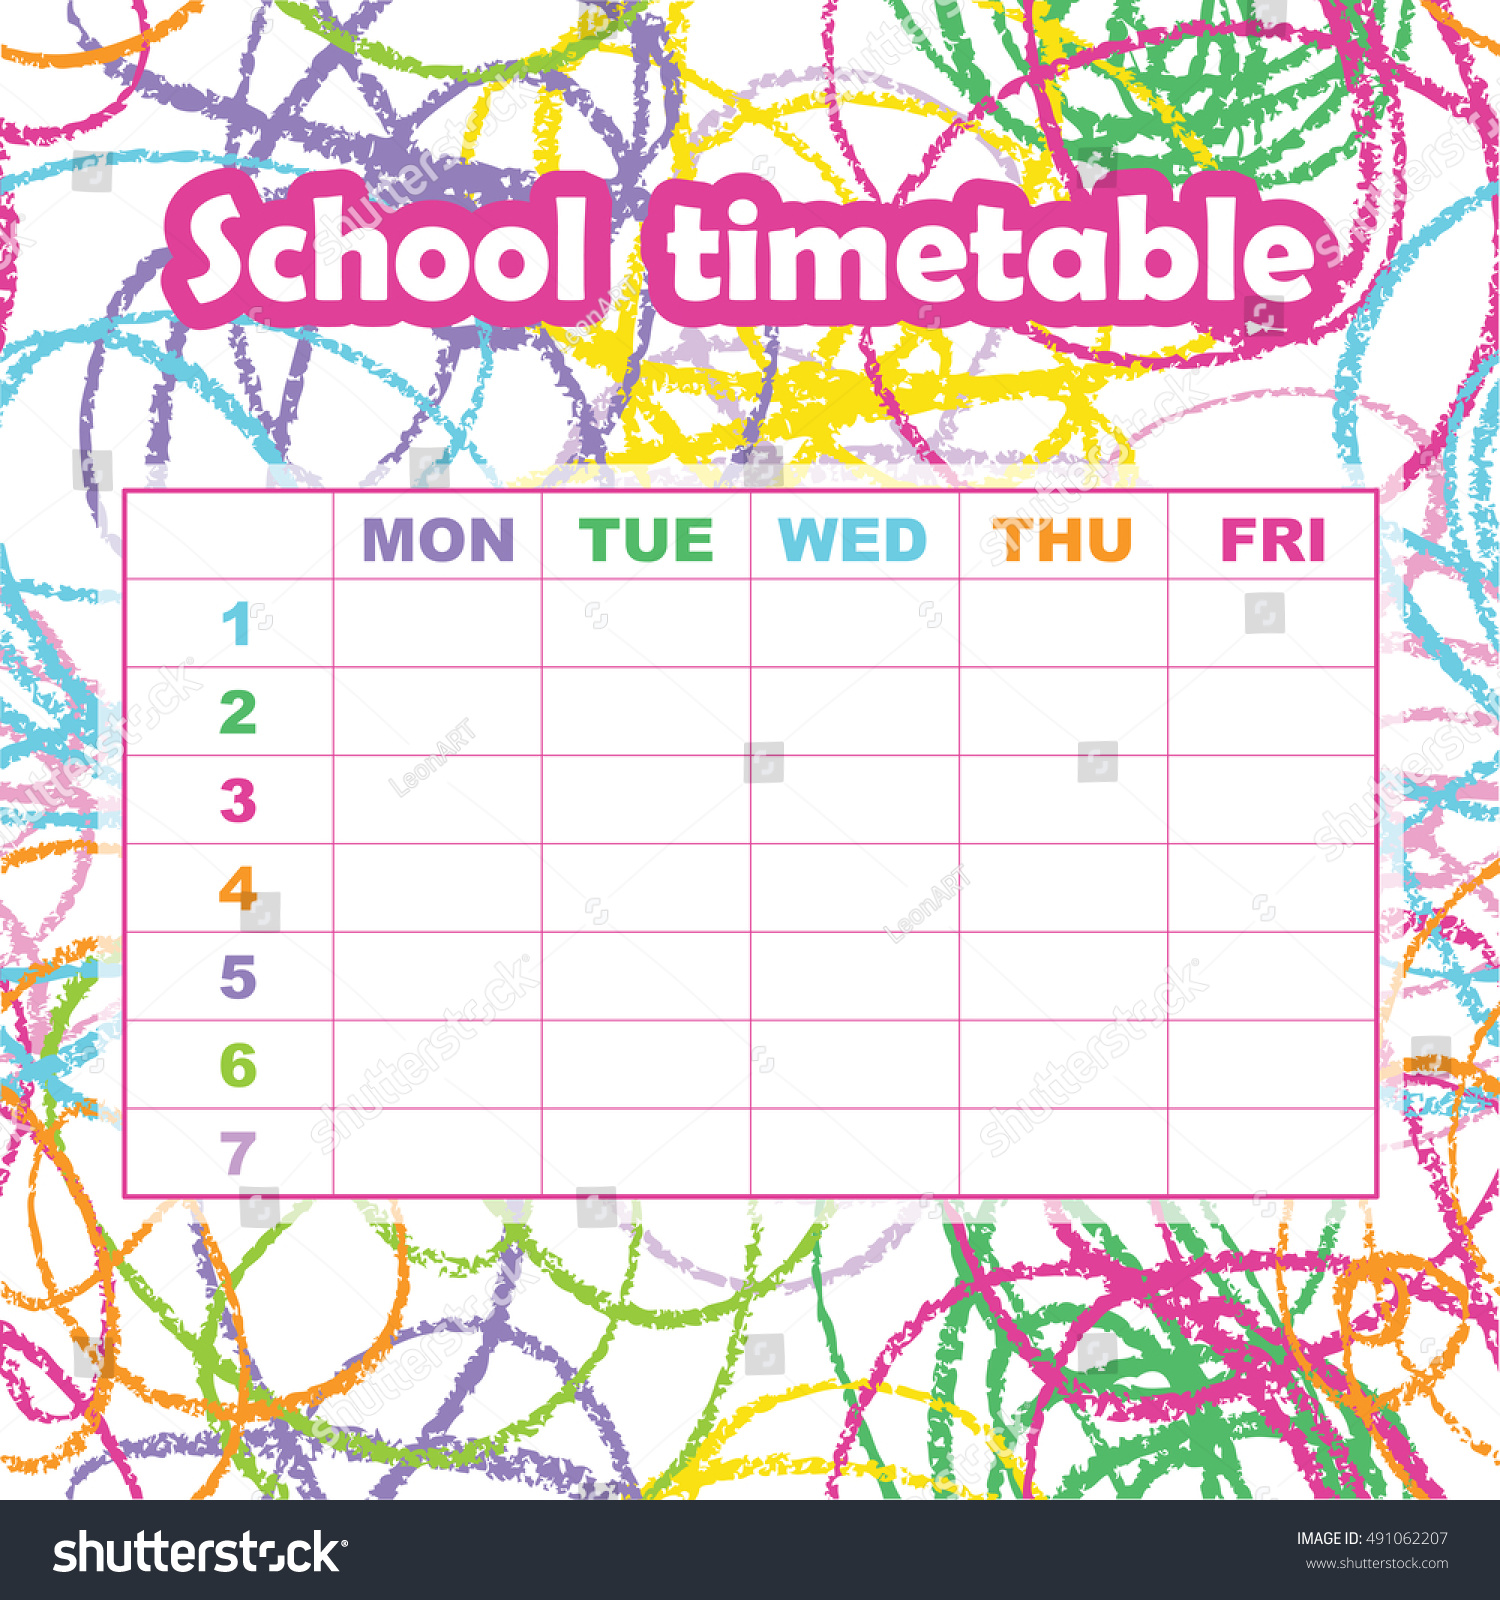 School Timetable Template Students Pupils Abstract Vector – Timetable Template School